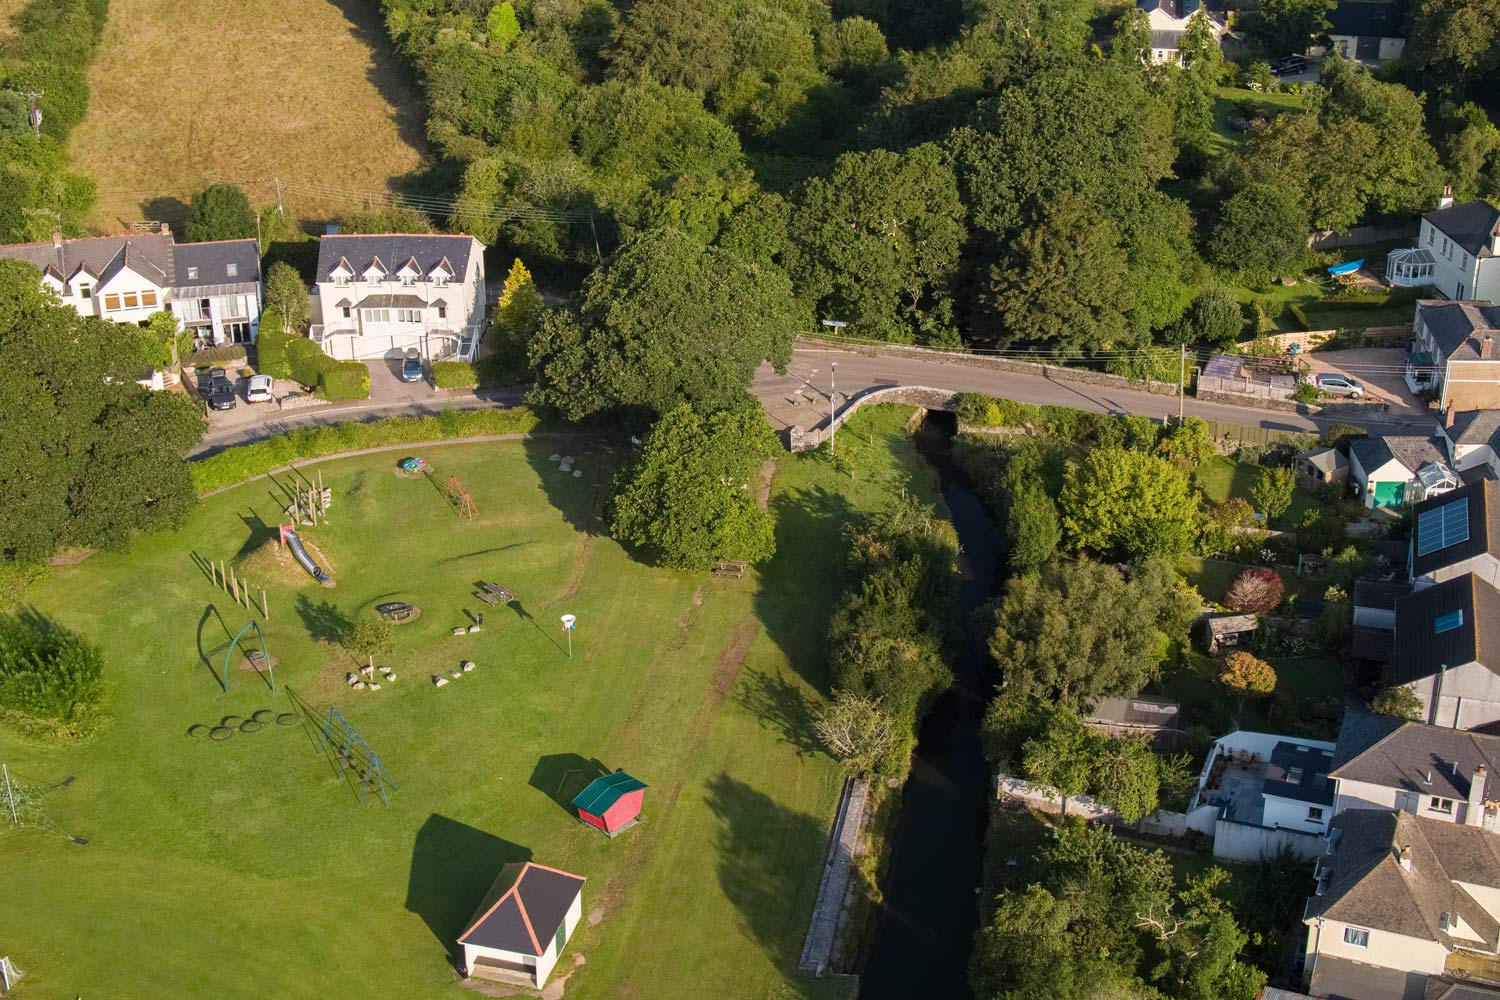 Drone Photograph of Creekview and Mylor Park